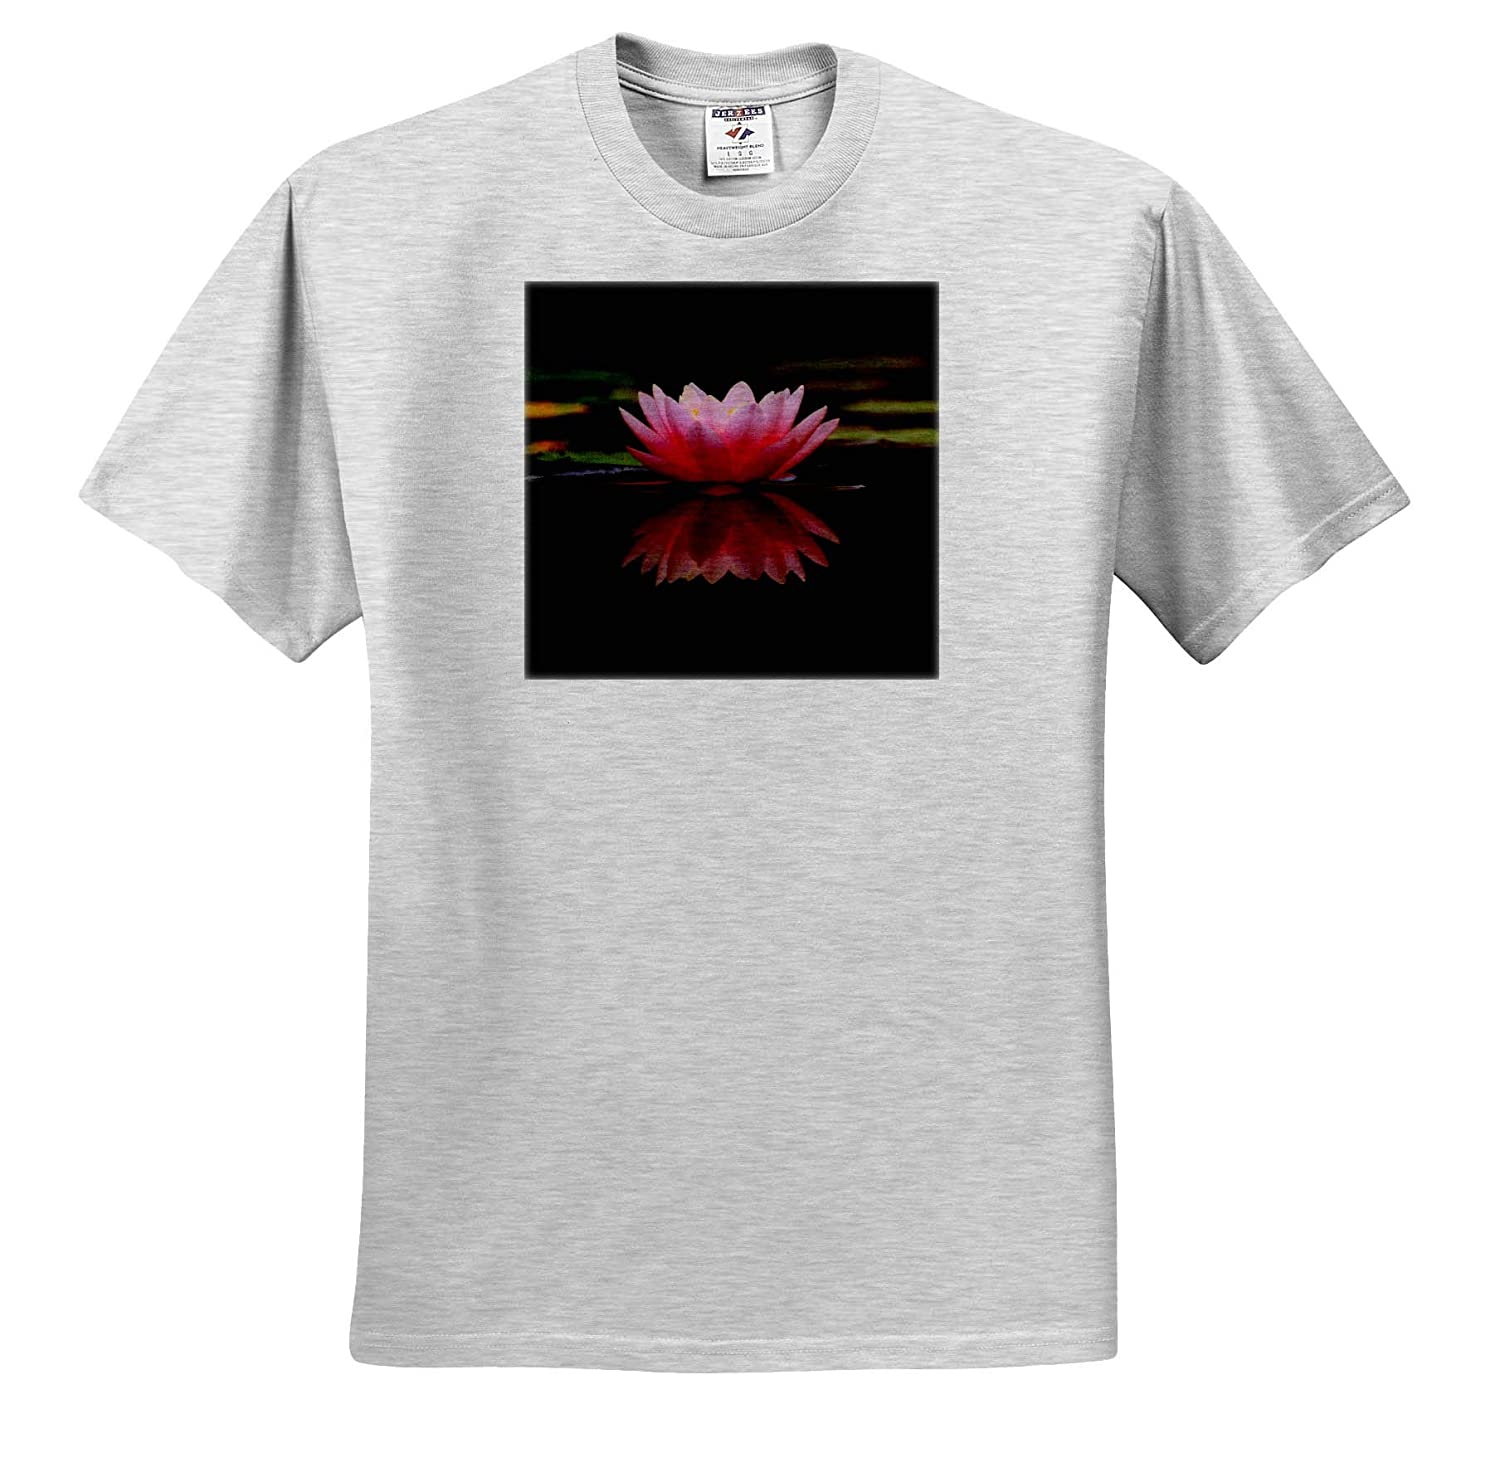 Adult T-Shirt XL ts/_314202 Lotus Reflection 3dRose Cassie Peters Floral